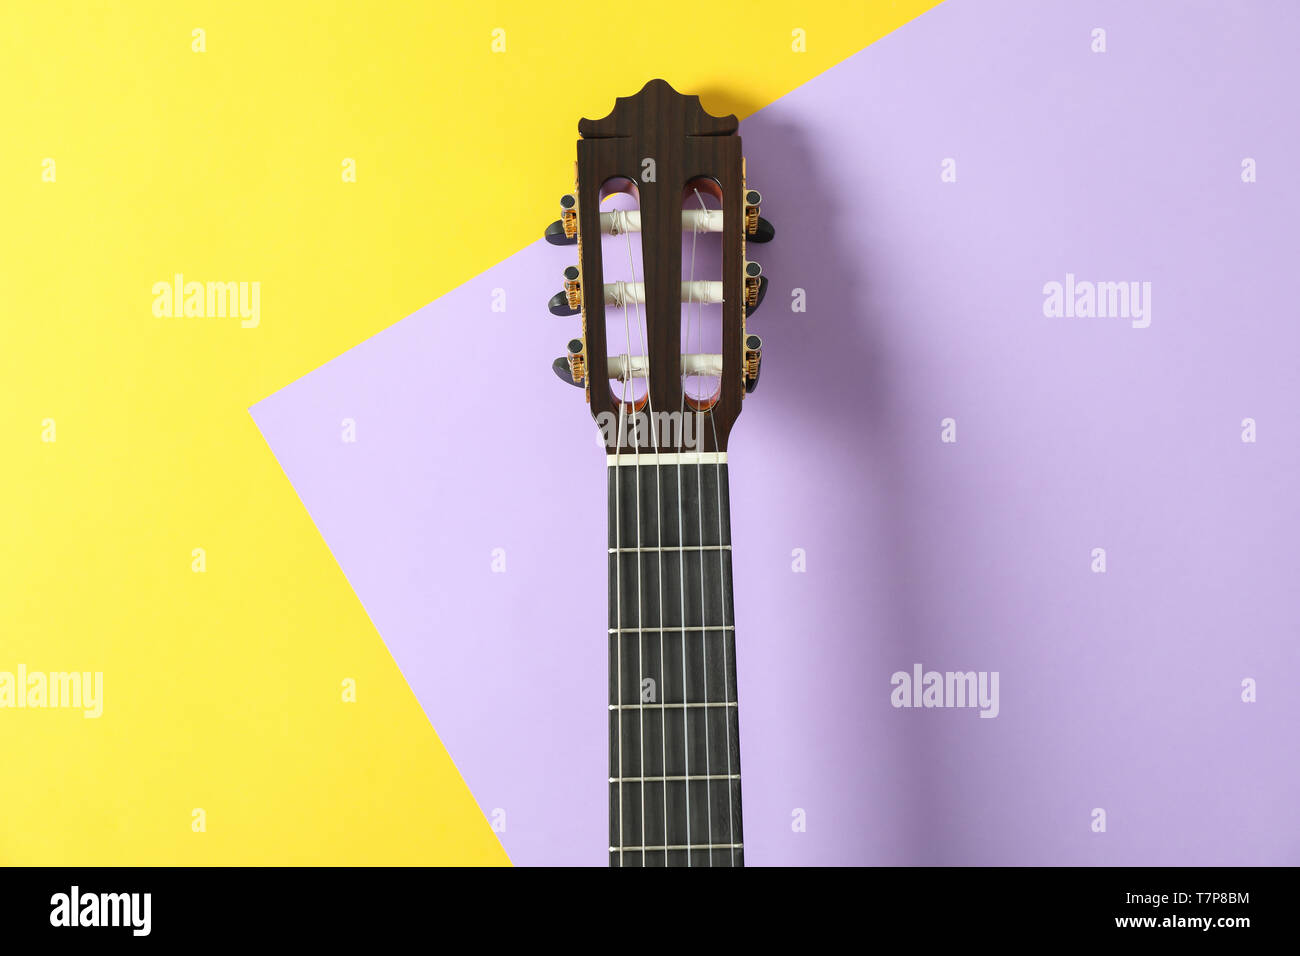 Guitar neck on two tone background, space for text - Stock Image